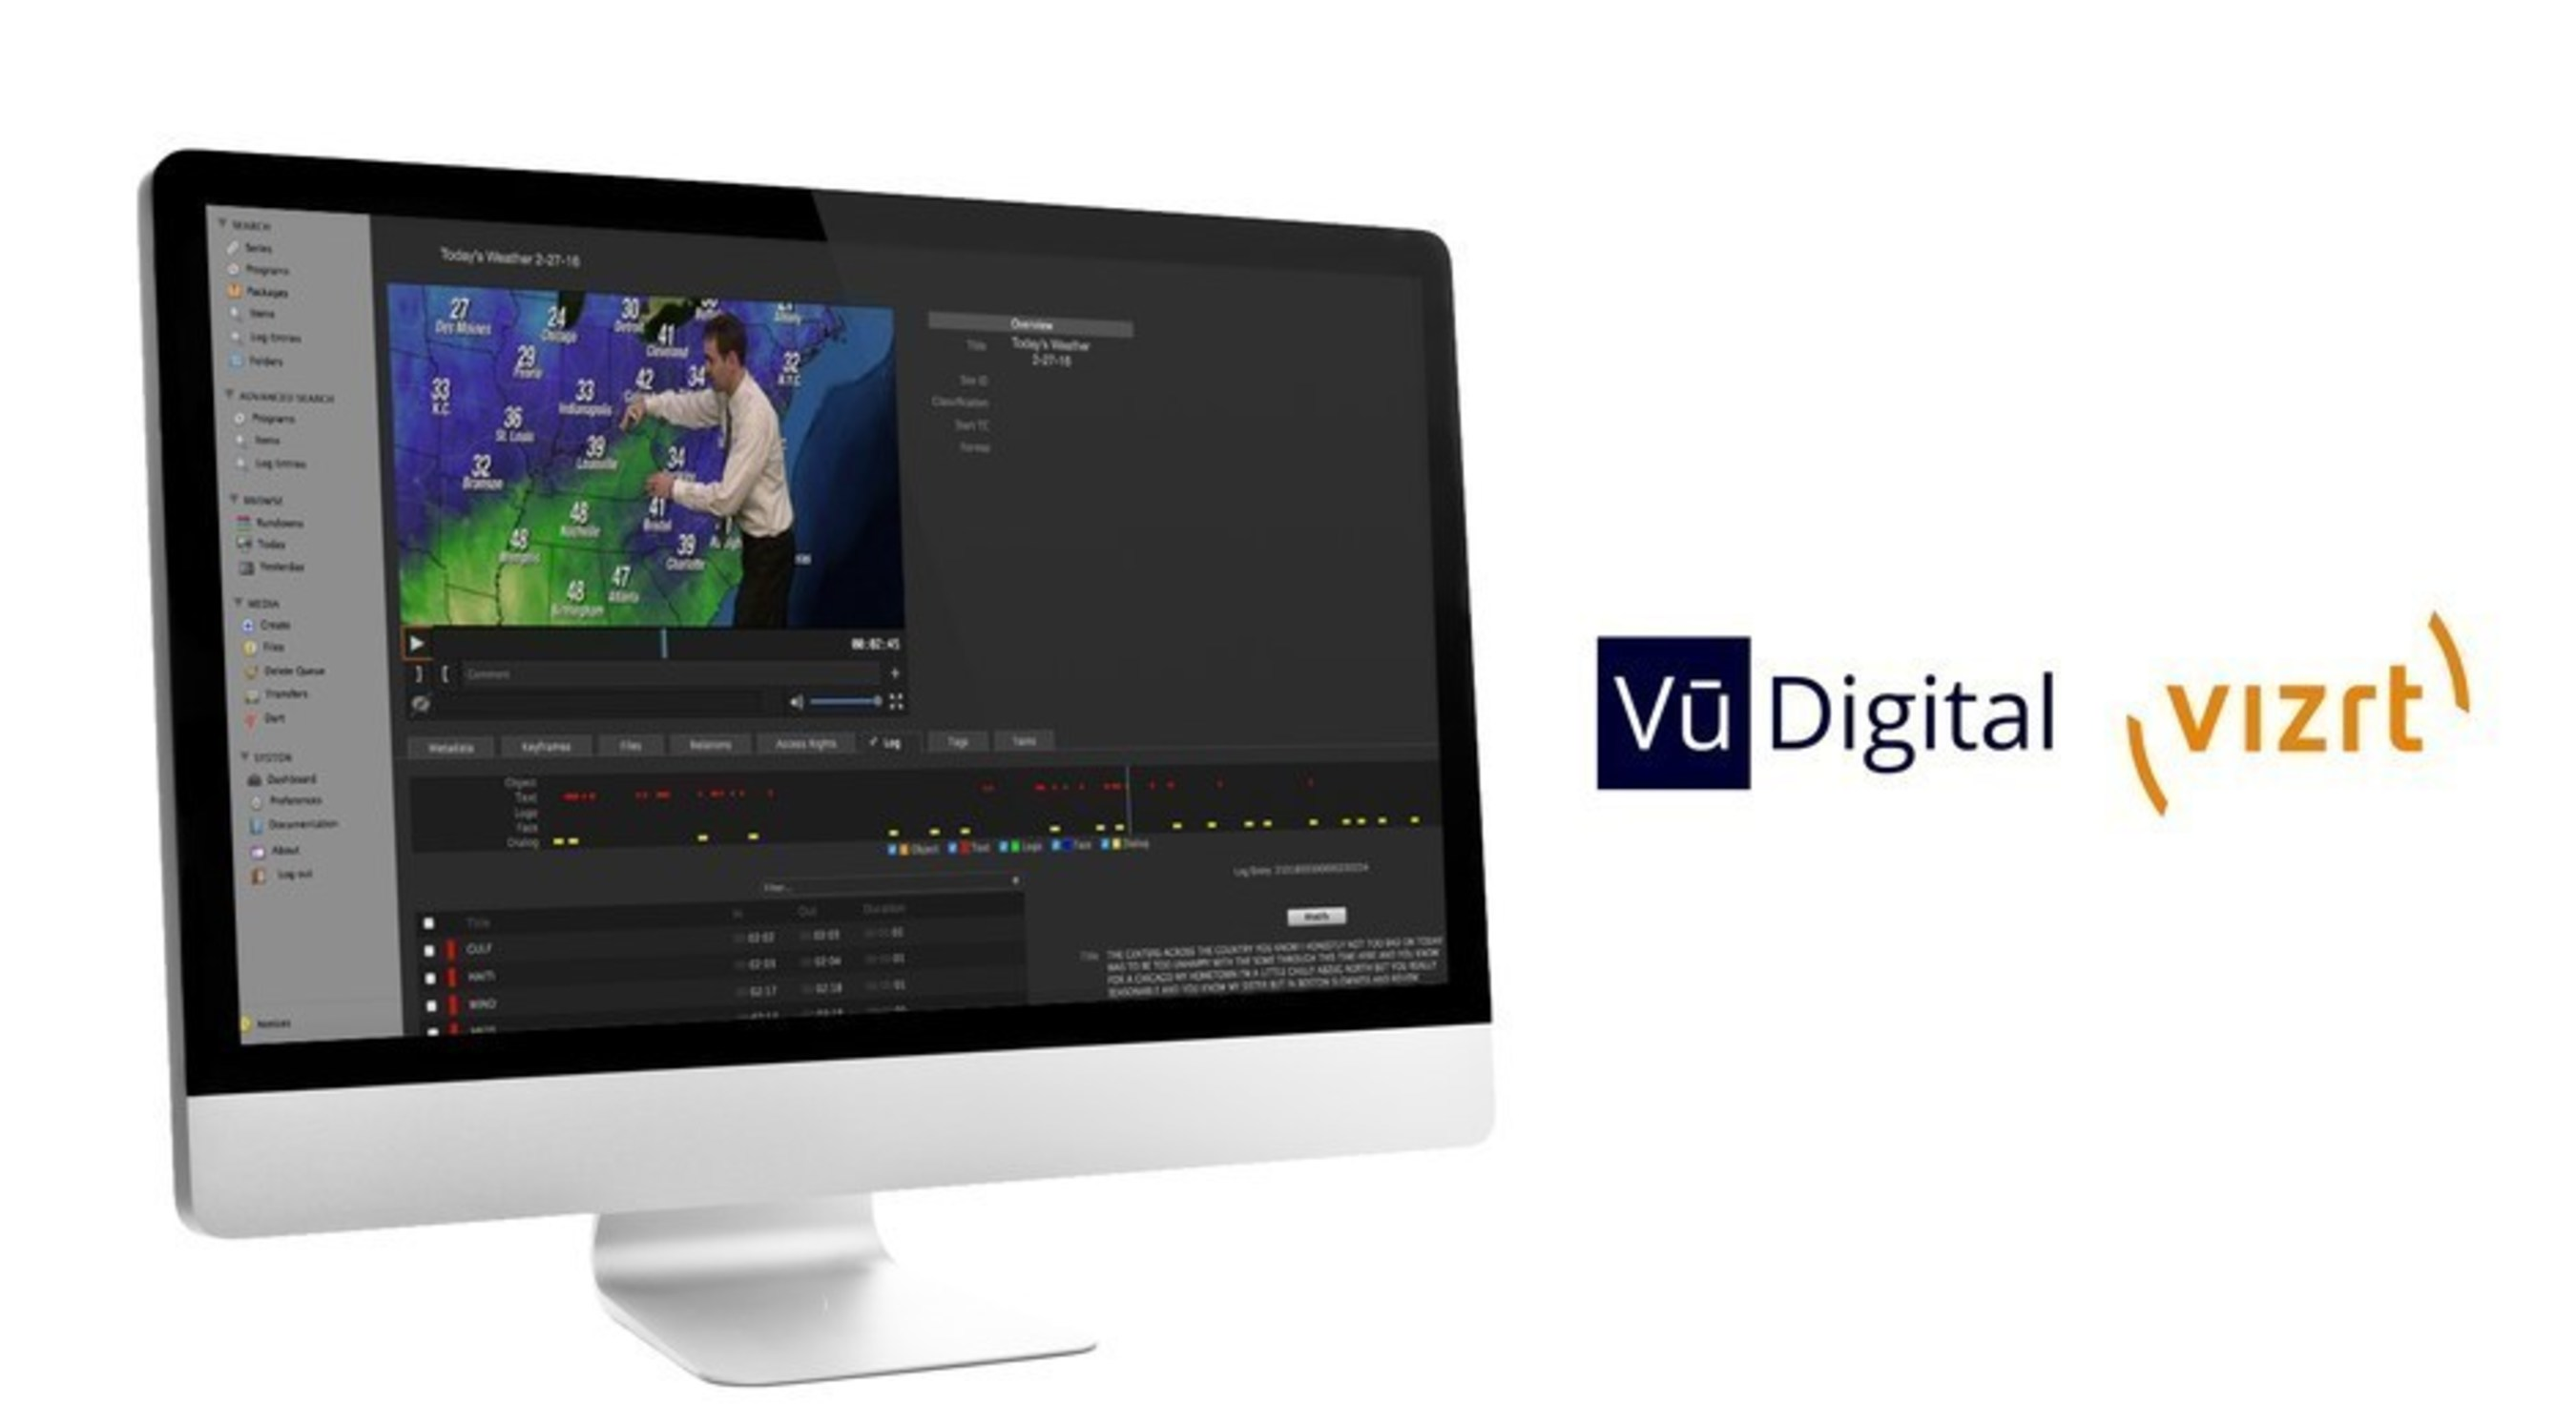 Vizrt and Vu Digital, a Mississippi-based technology start up, are teaming up to provide media and entertainment companies a powerful, new automated tools to enrich metadata. Both companies plan to showcase the technology solution at next week's National Association of Broadcasters annual conference in Las Vegas, Nevada. (PRNewsFoto/C Spire)